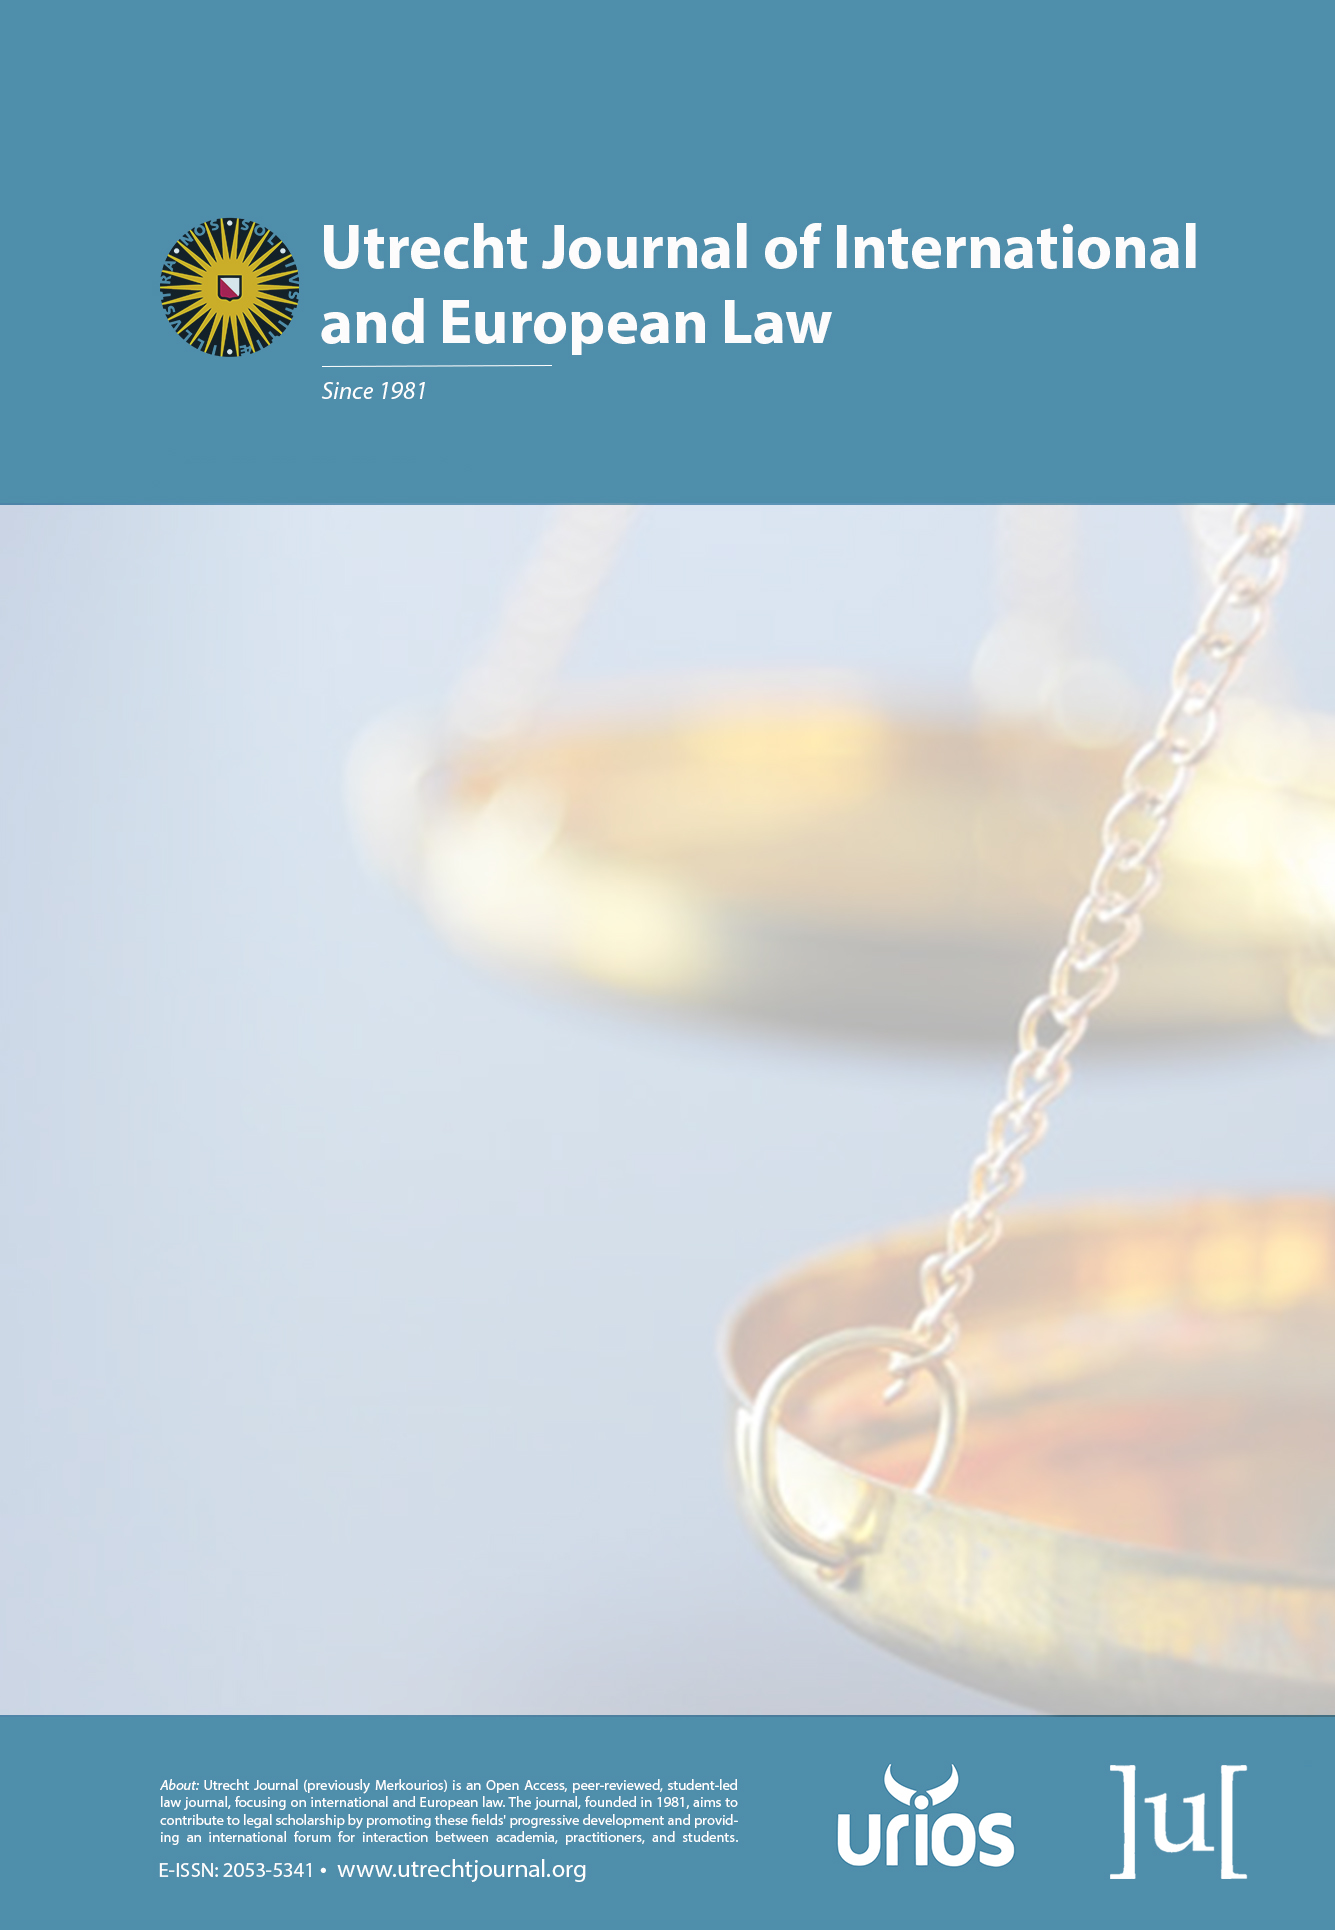 cover image for the Utrecht Journal of International and European Law journal